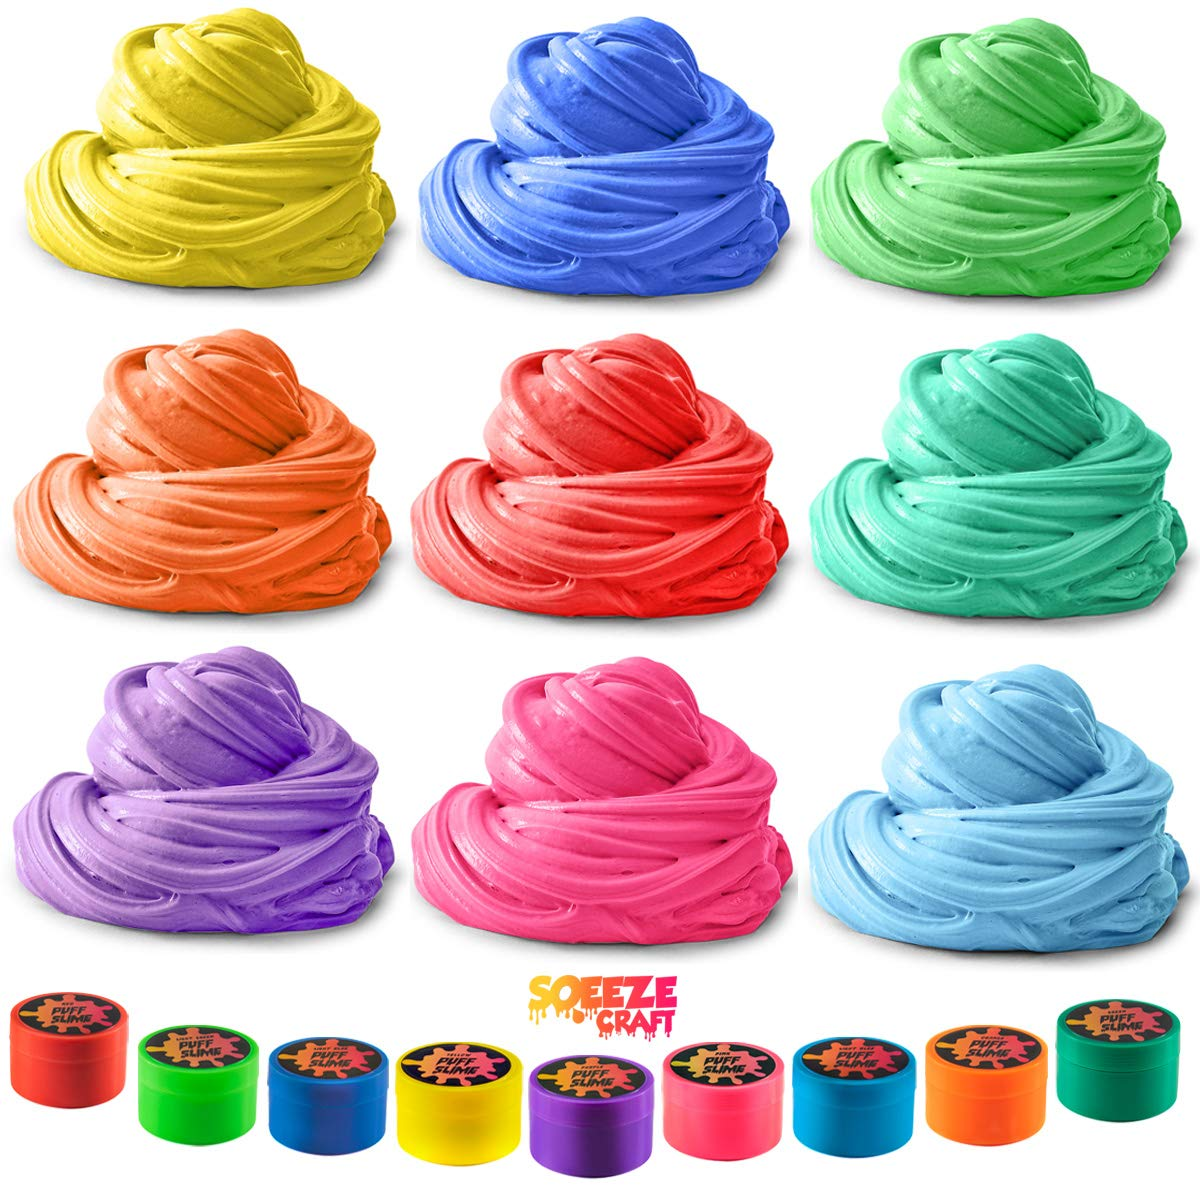 Squeeze Craft Puff Slime - 9 Pack Jumbo Fluffy Mud Putty Assorted Bright Colors - 2 Oz. per Container - for Sensory and Tactile Stimulation, Event Prizes, DIY Projects, Educational Game, Fidget Toy by Squeeze Craft